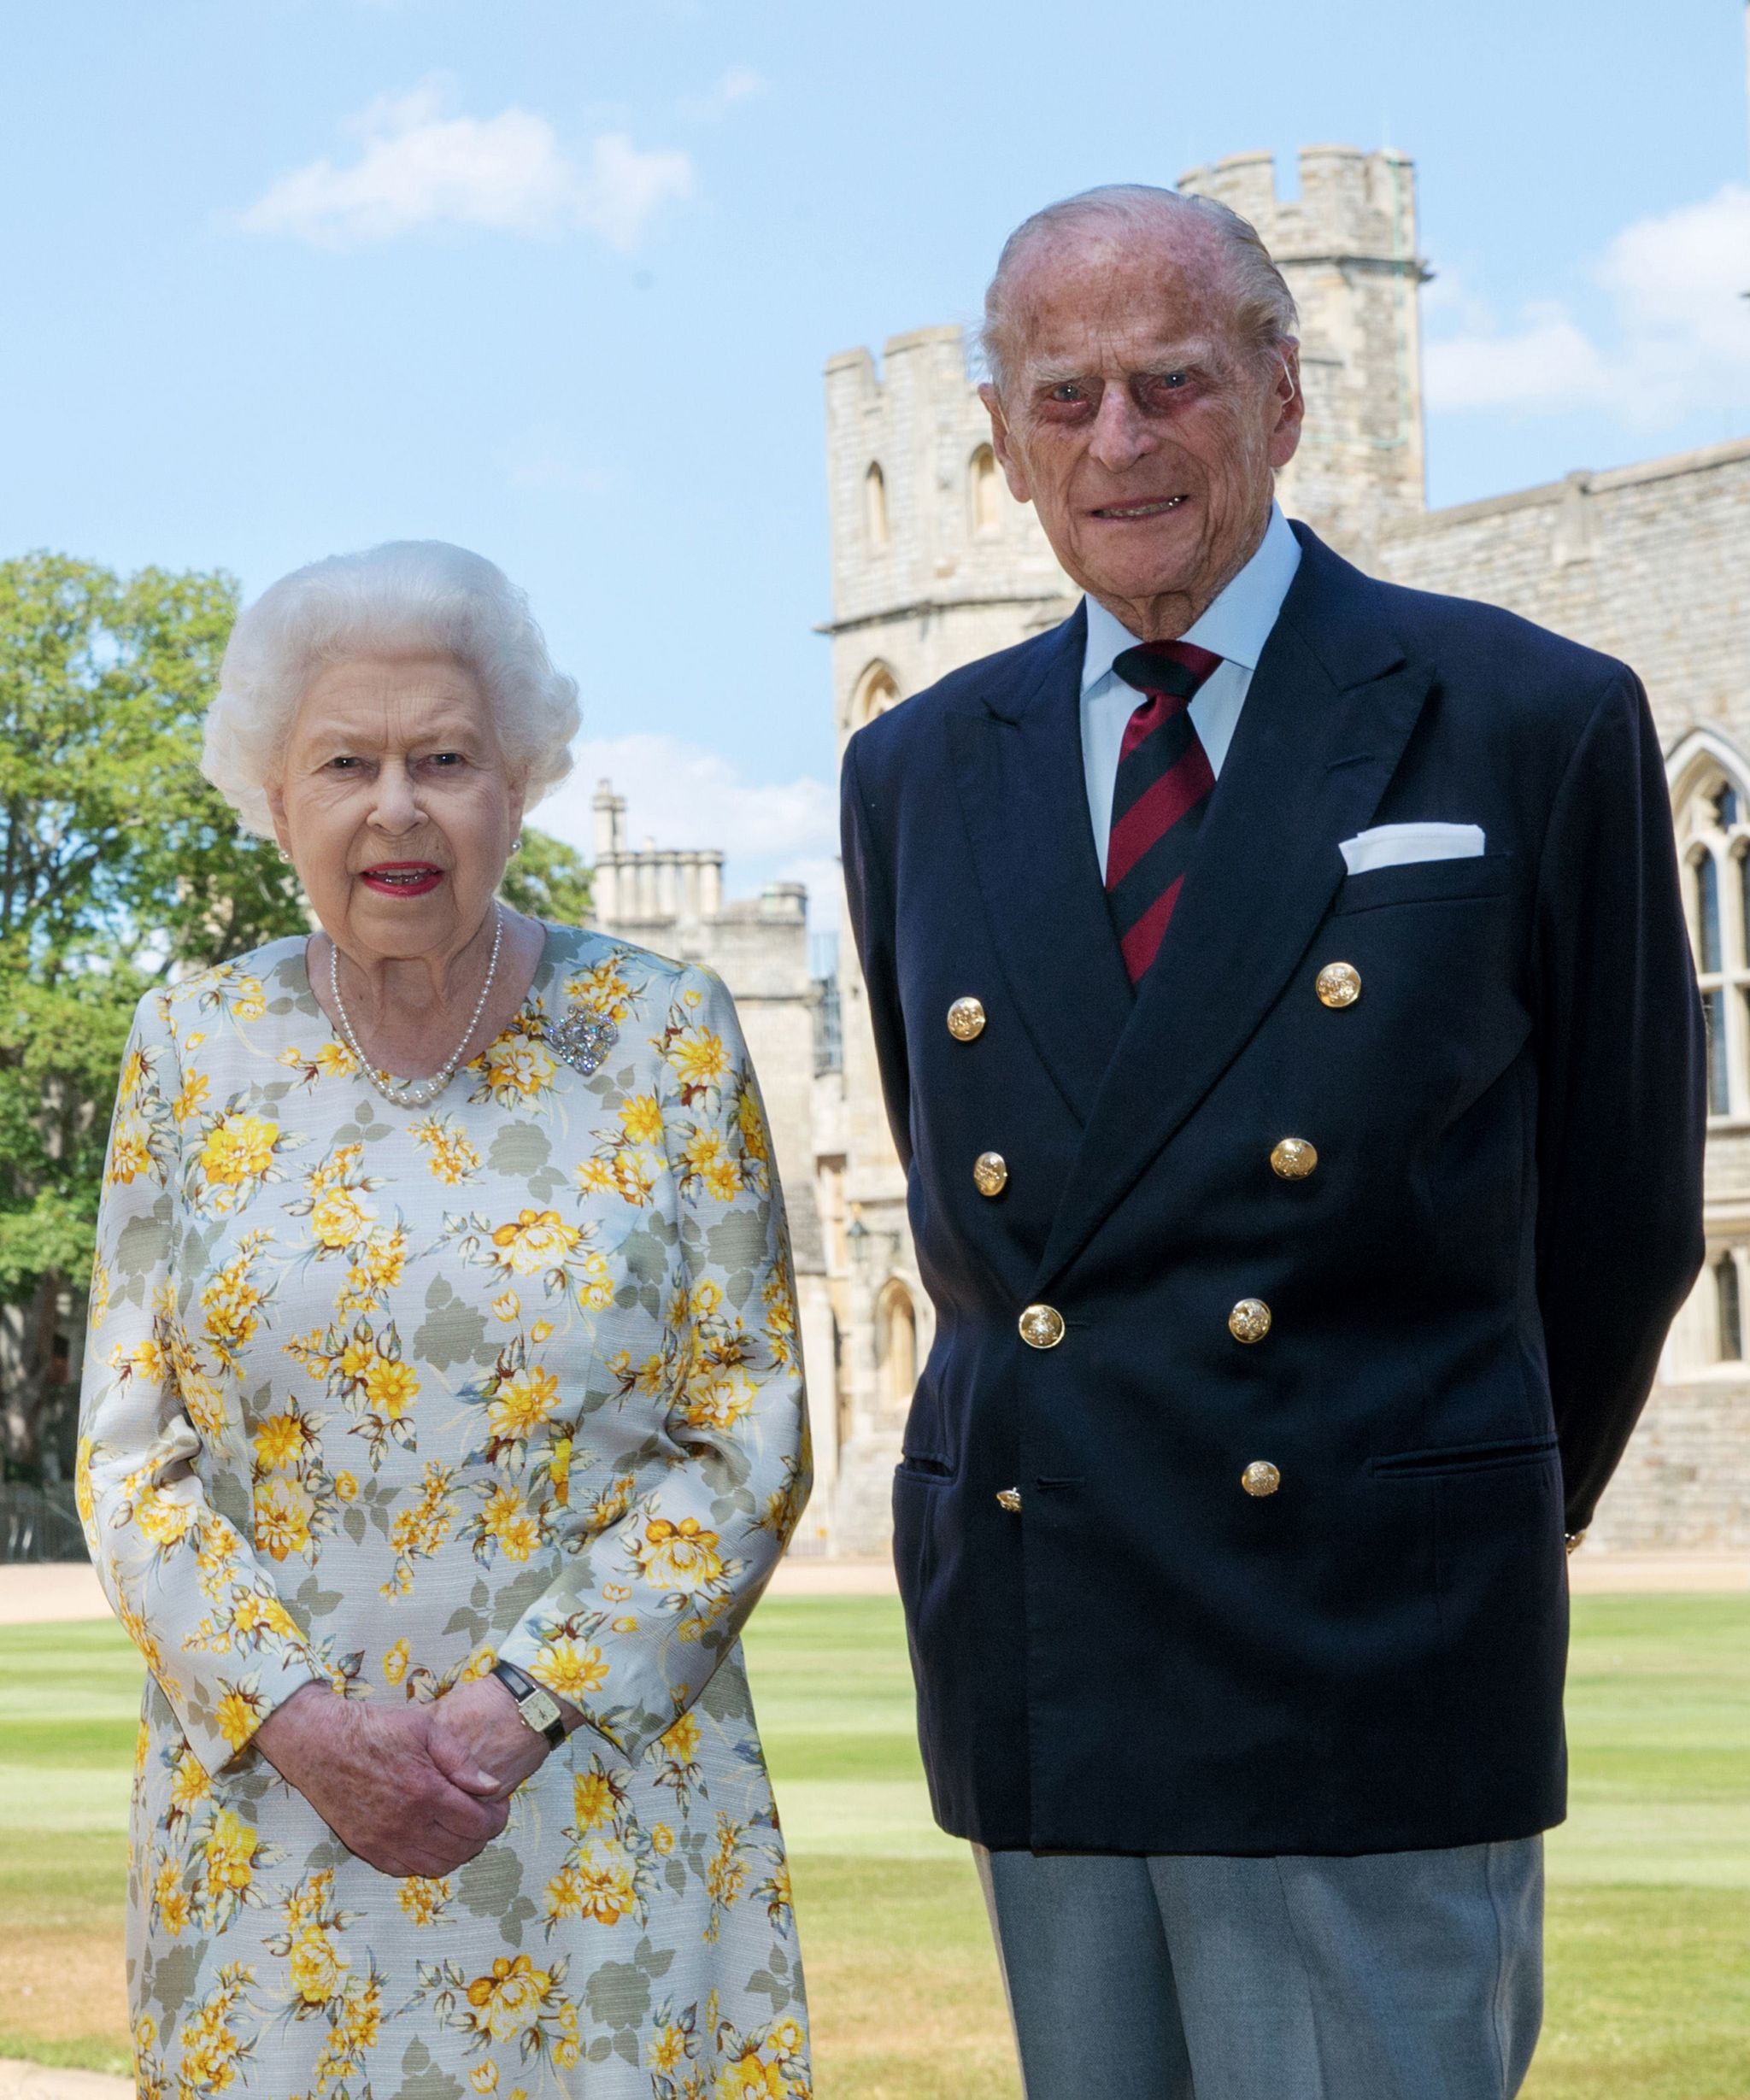 Queen Elizabeth II and the Duke of Edinburgh pictured 1/6/2020 in the quadrangle of Windsor Castle ahead of his 99th birthday on Wednesday.